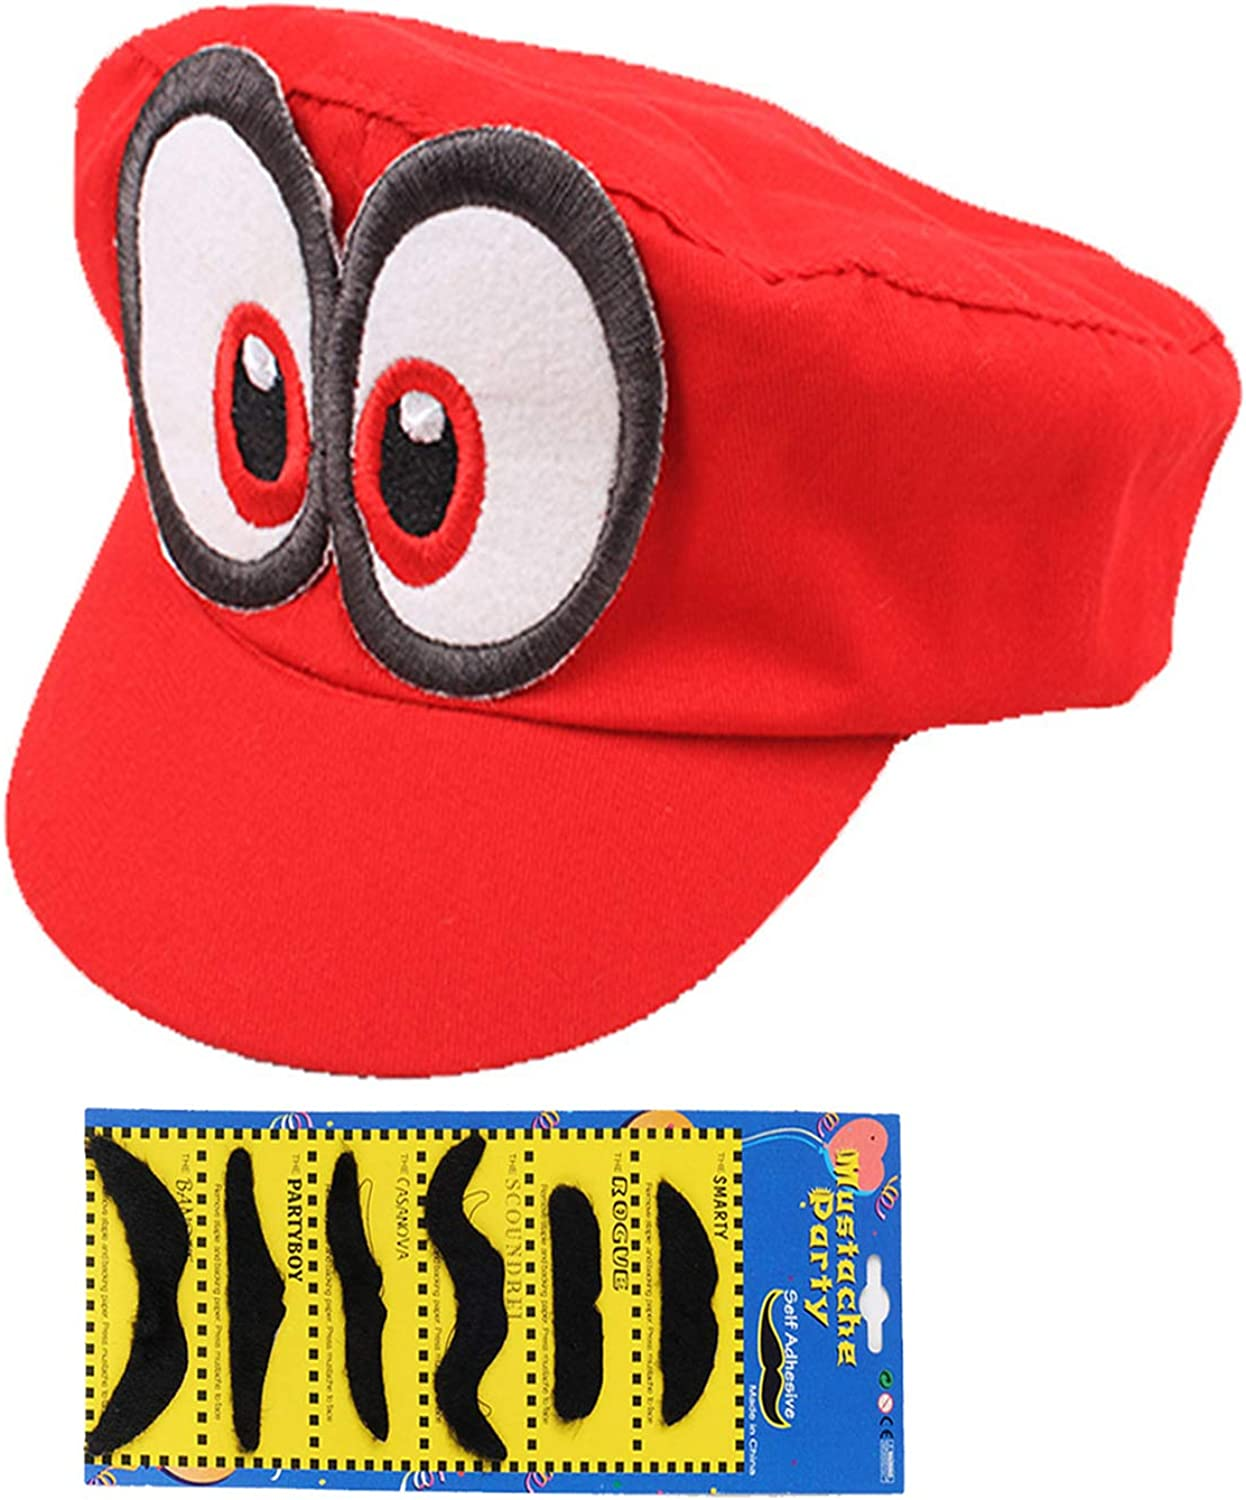 SKYC PXIYOU Super Mario Bros Hat Cosplay Kids Adult Halloween Costume Baseball Anime Unisex Role Play Hat Odyssey Red, 23-24 inch: Clothing